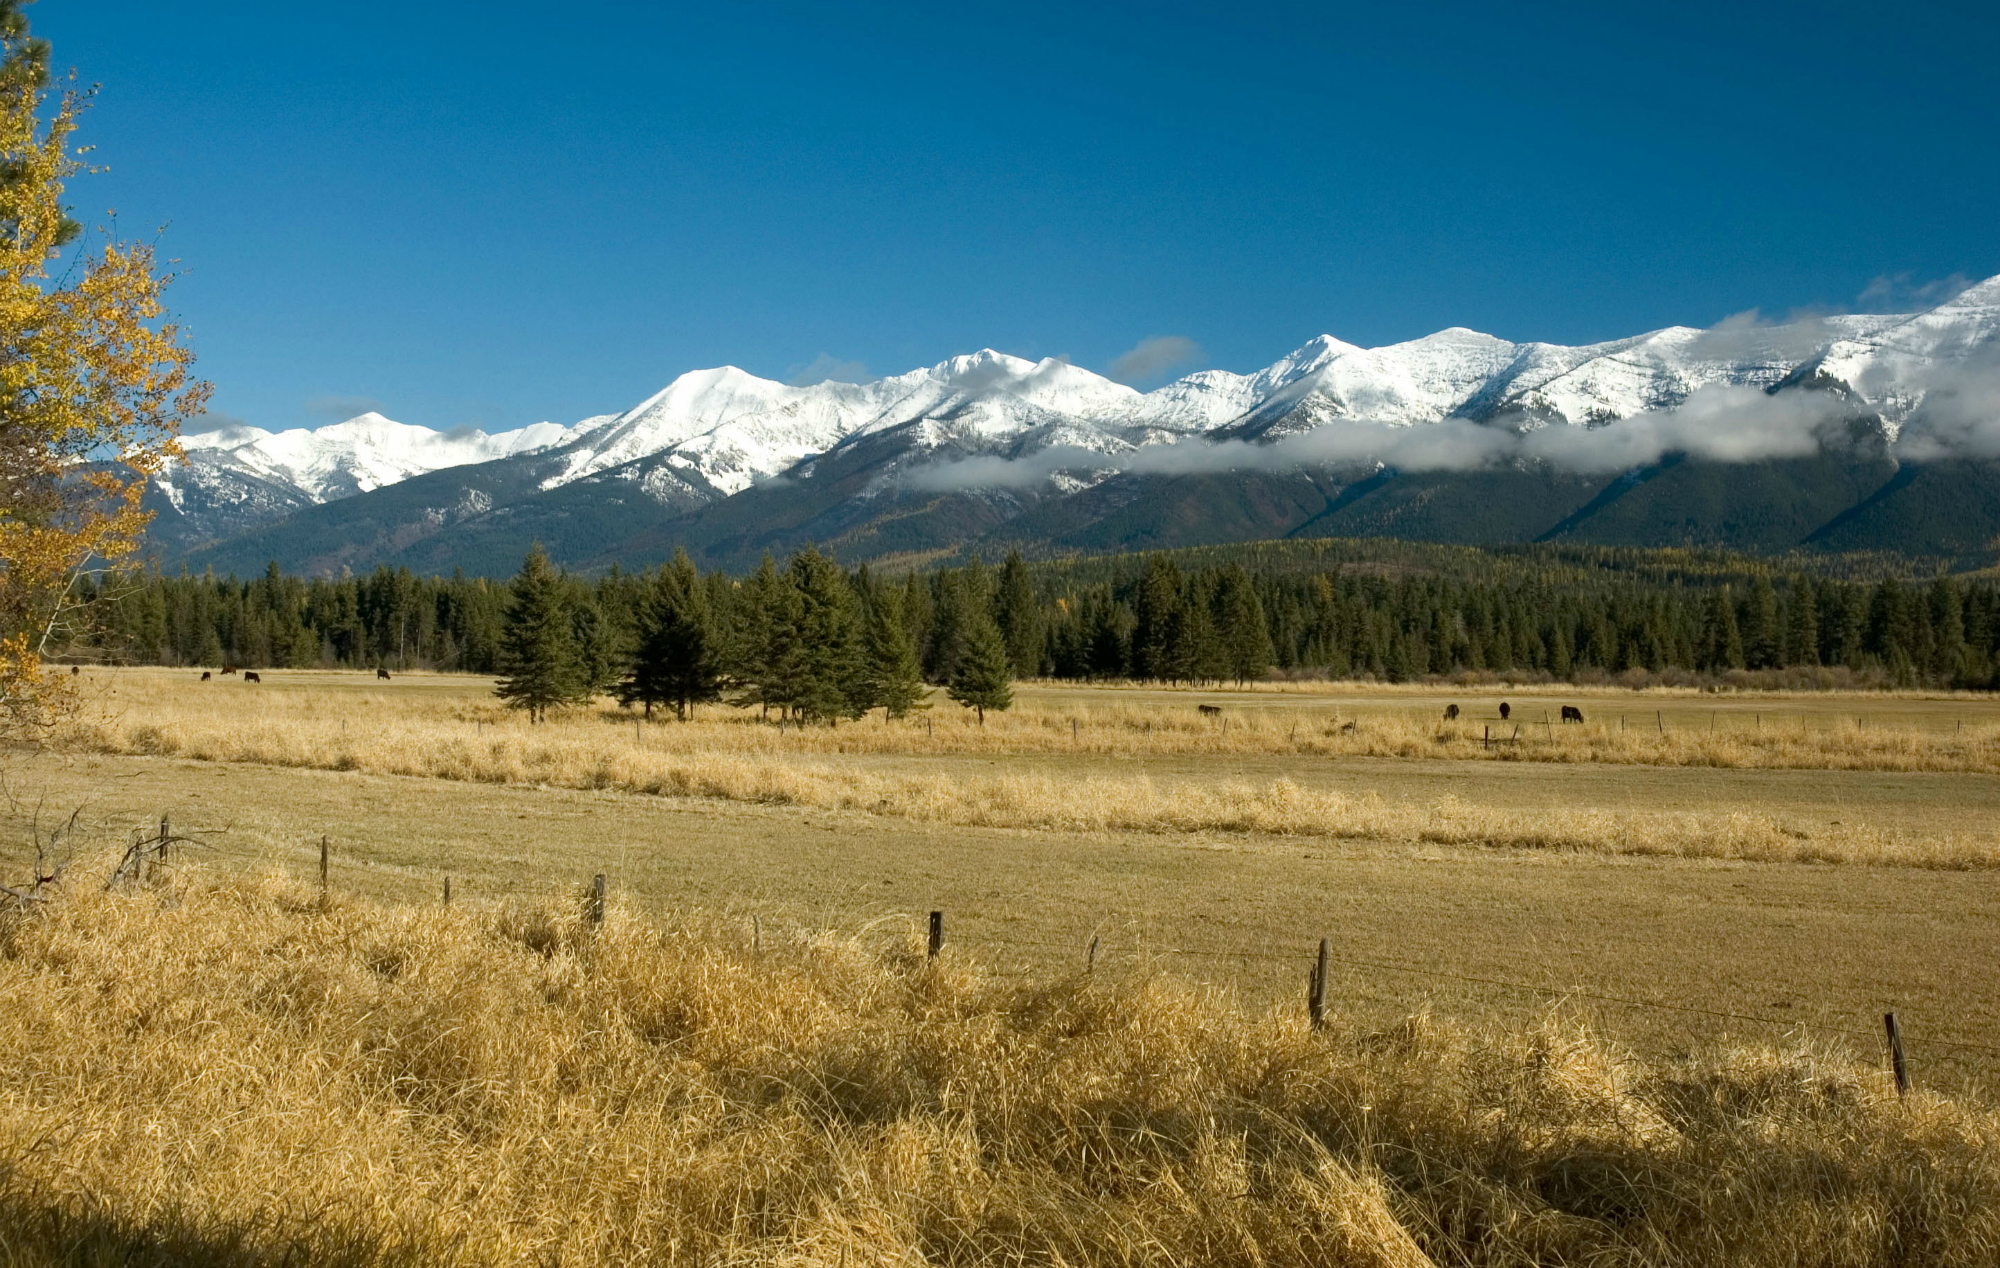 Snow-capped peaks of the Swan Range rise above the forest-covered valley floor